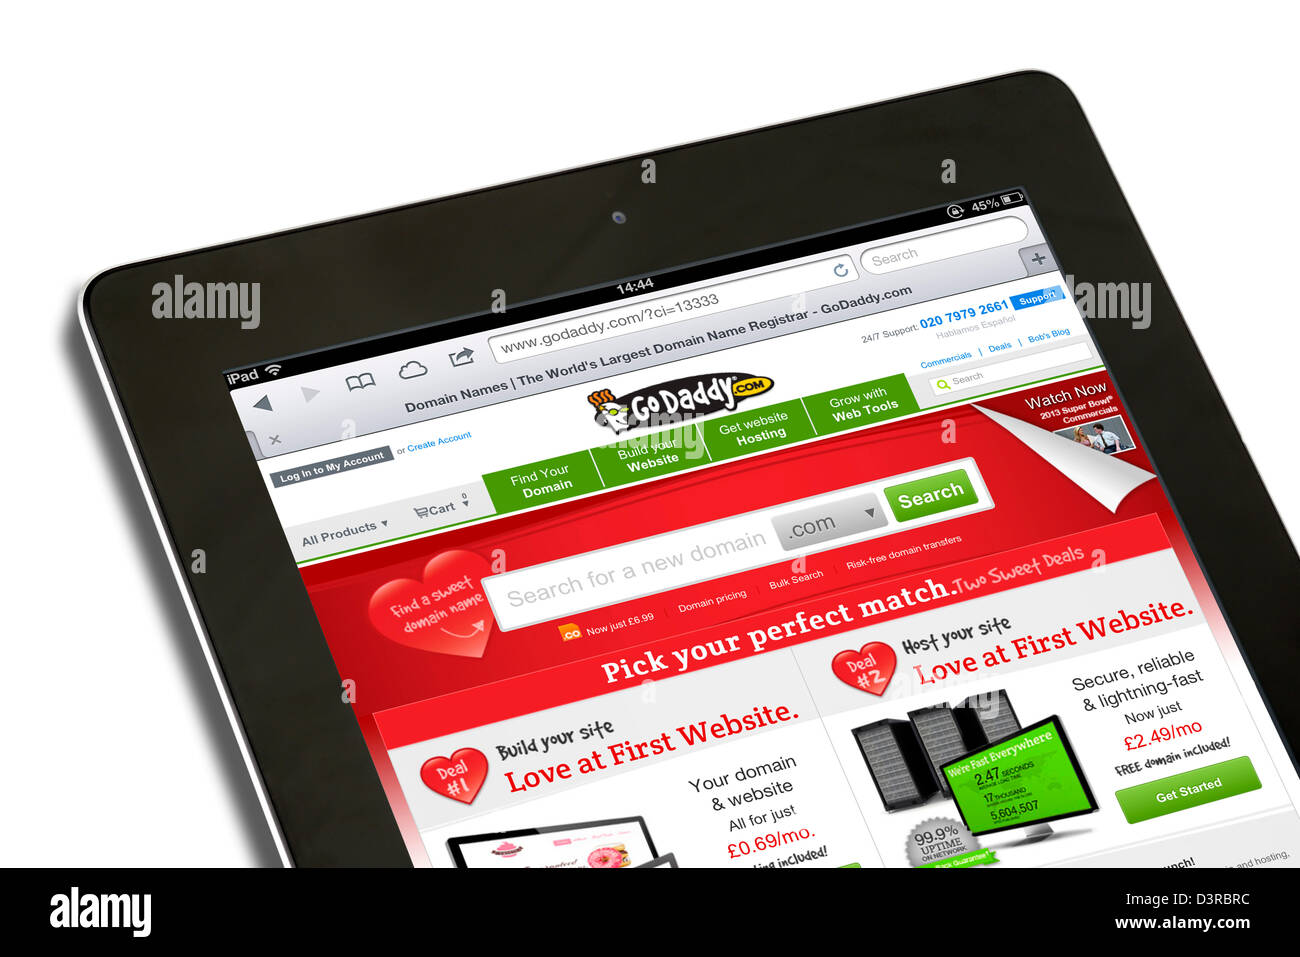 The domain registration and web hosting site Go Daddy viewed on a 4th generation iPad - Stock Image